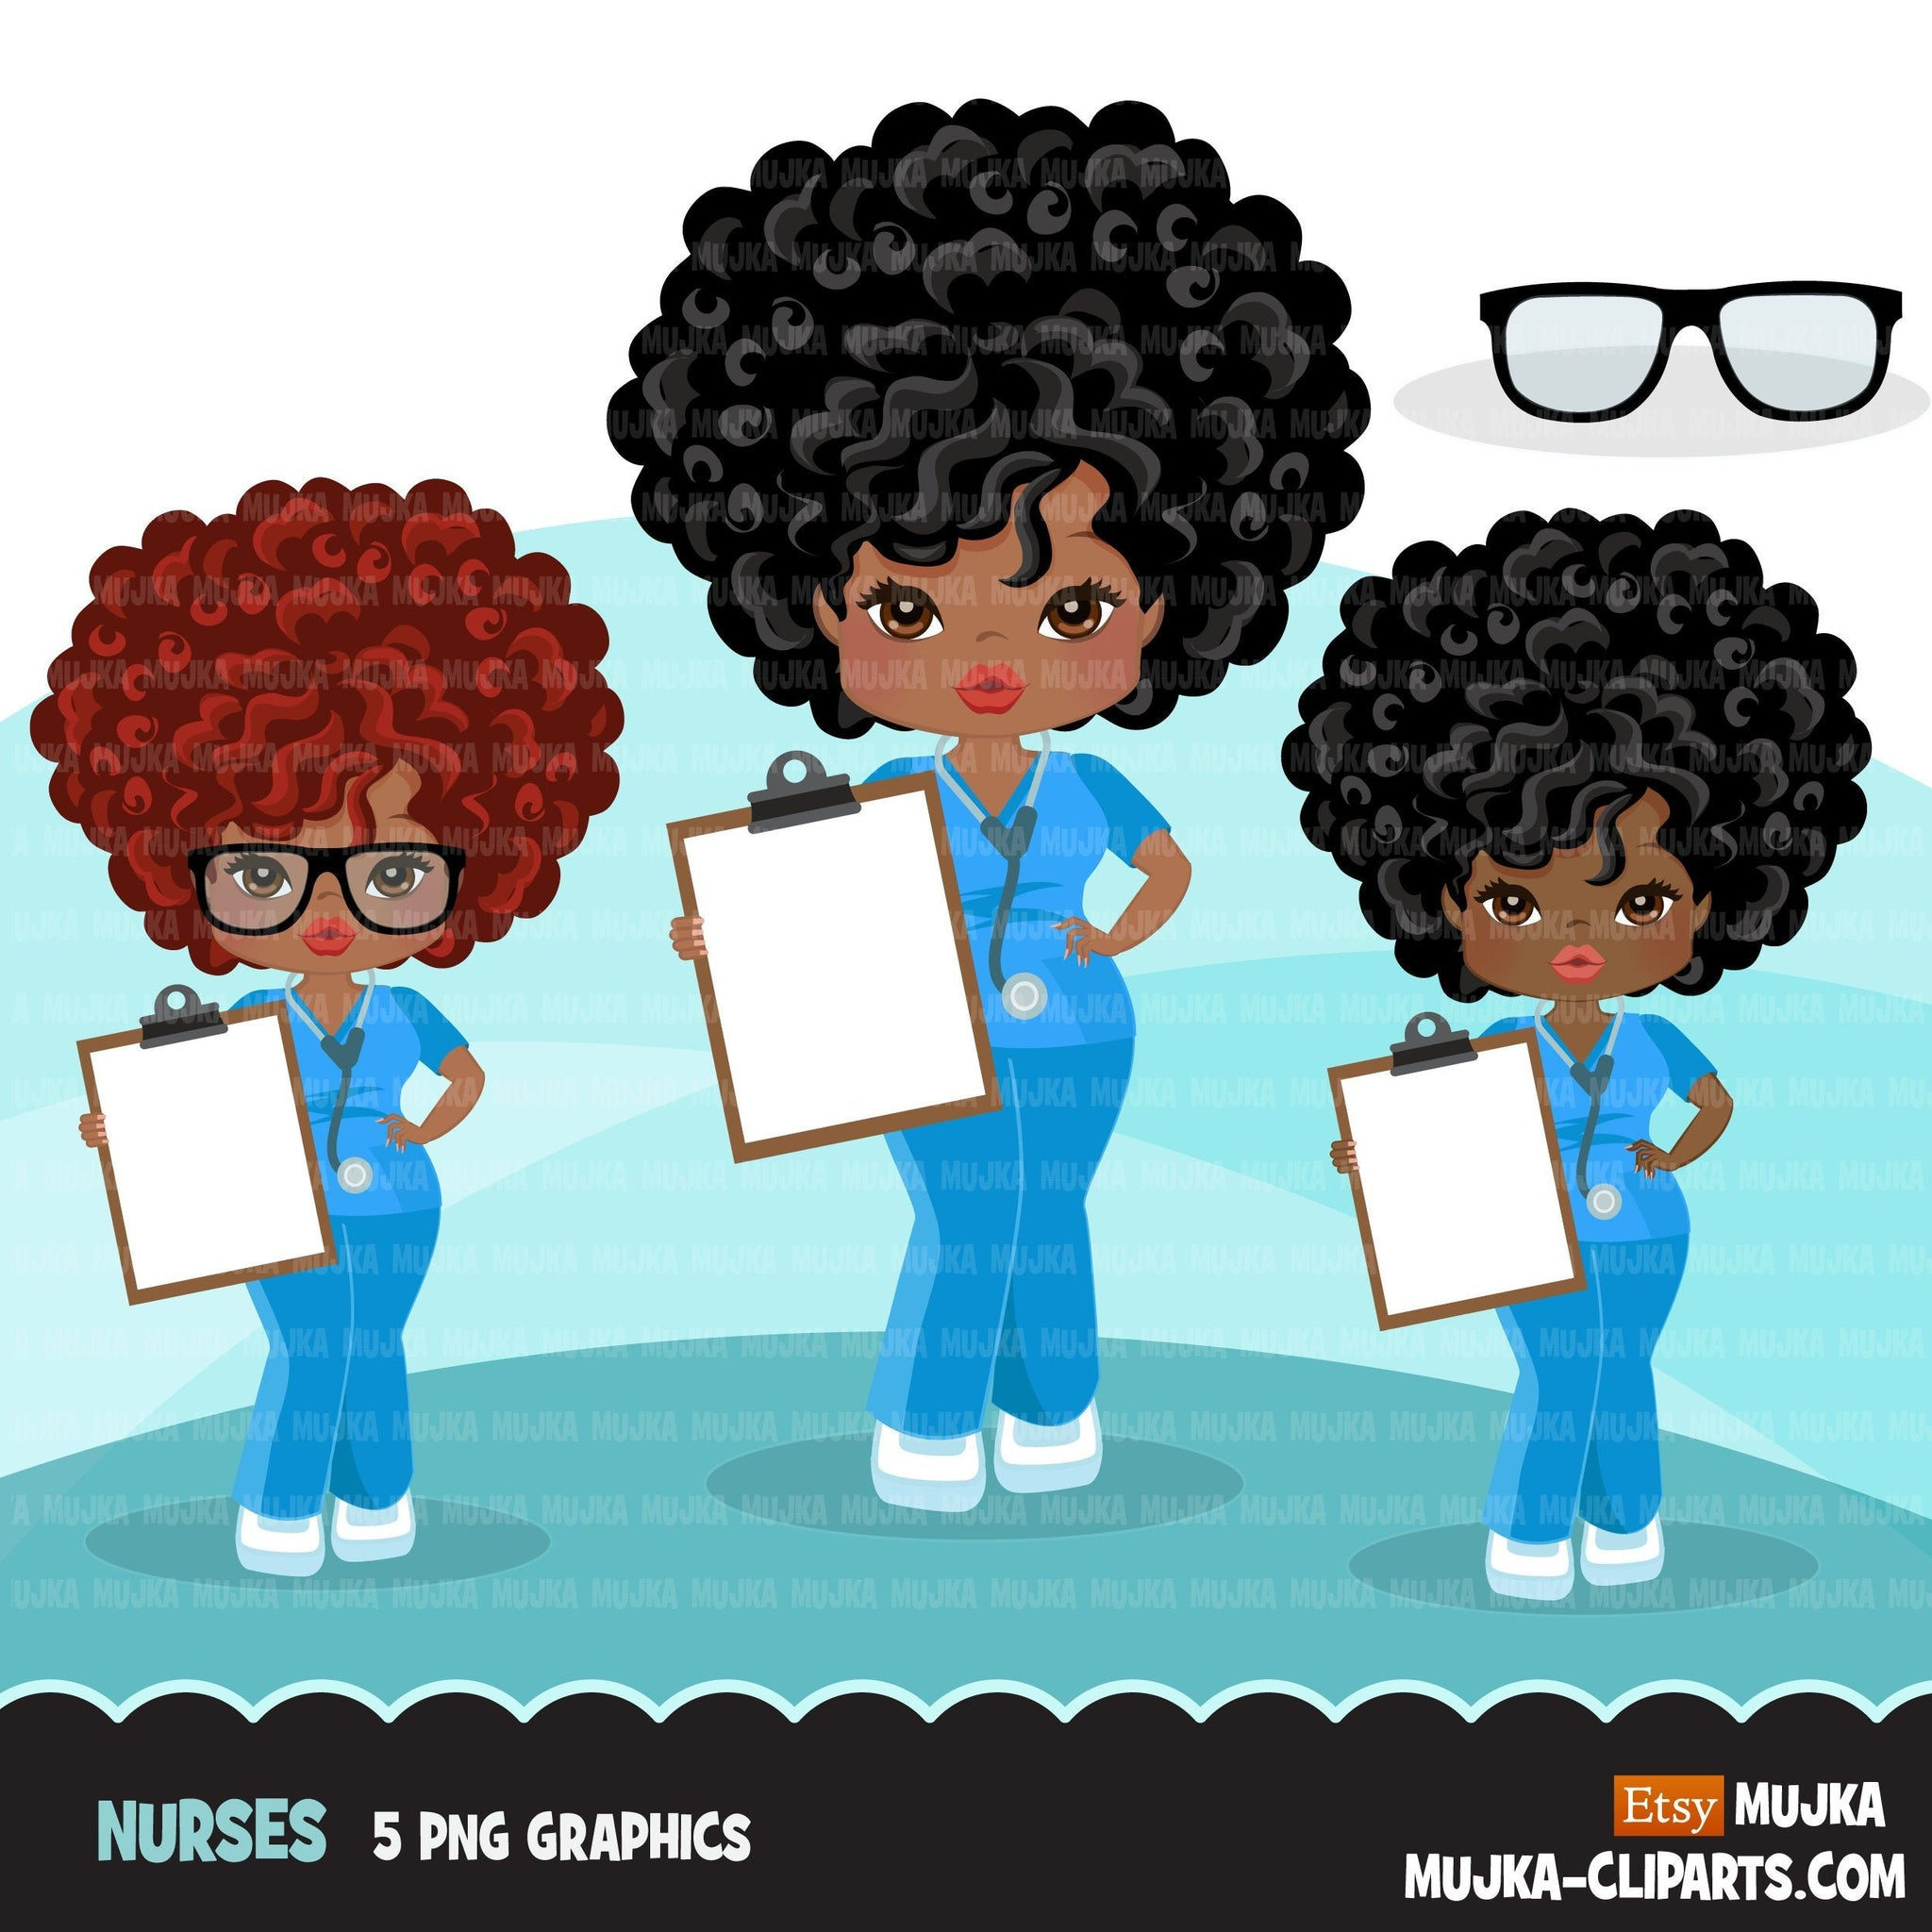 Afro black woman nurse clipart with scrubs and patient chart African-American graphics, print and cut PNG T-Shirt Designs, Black Girls clip art